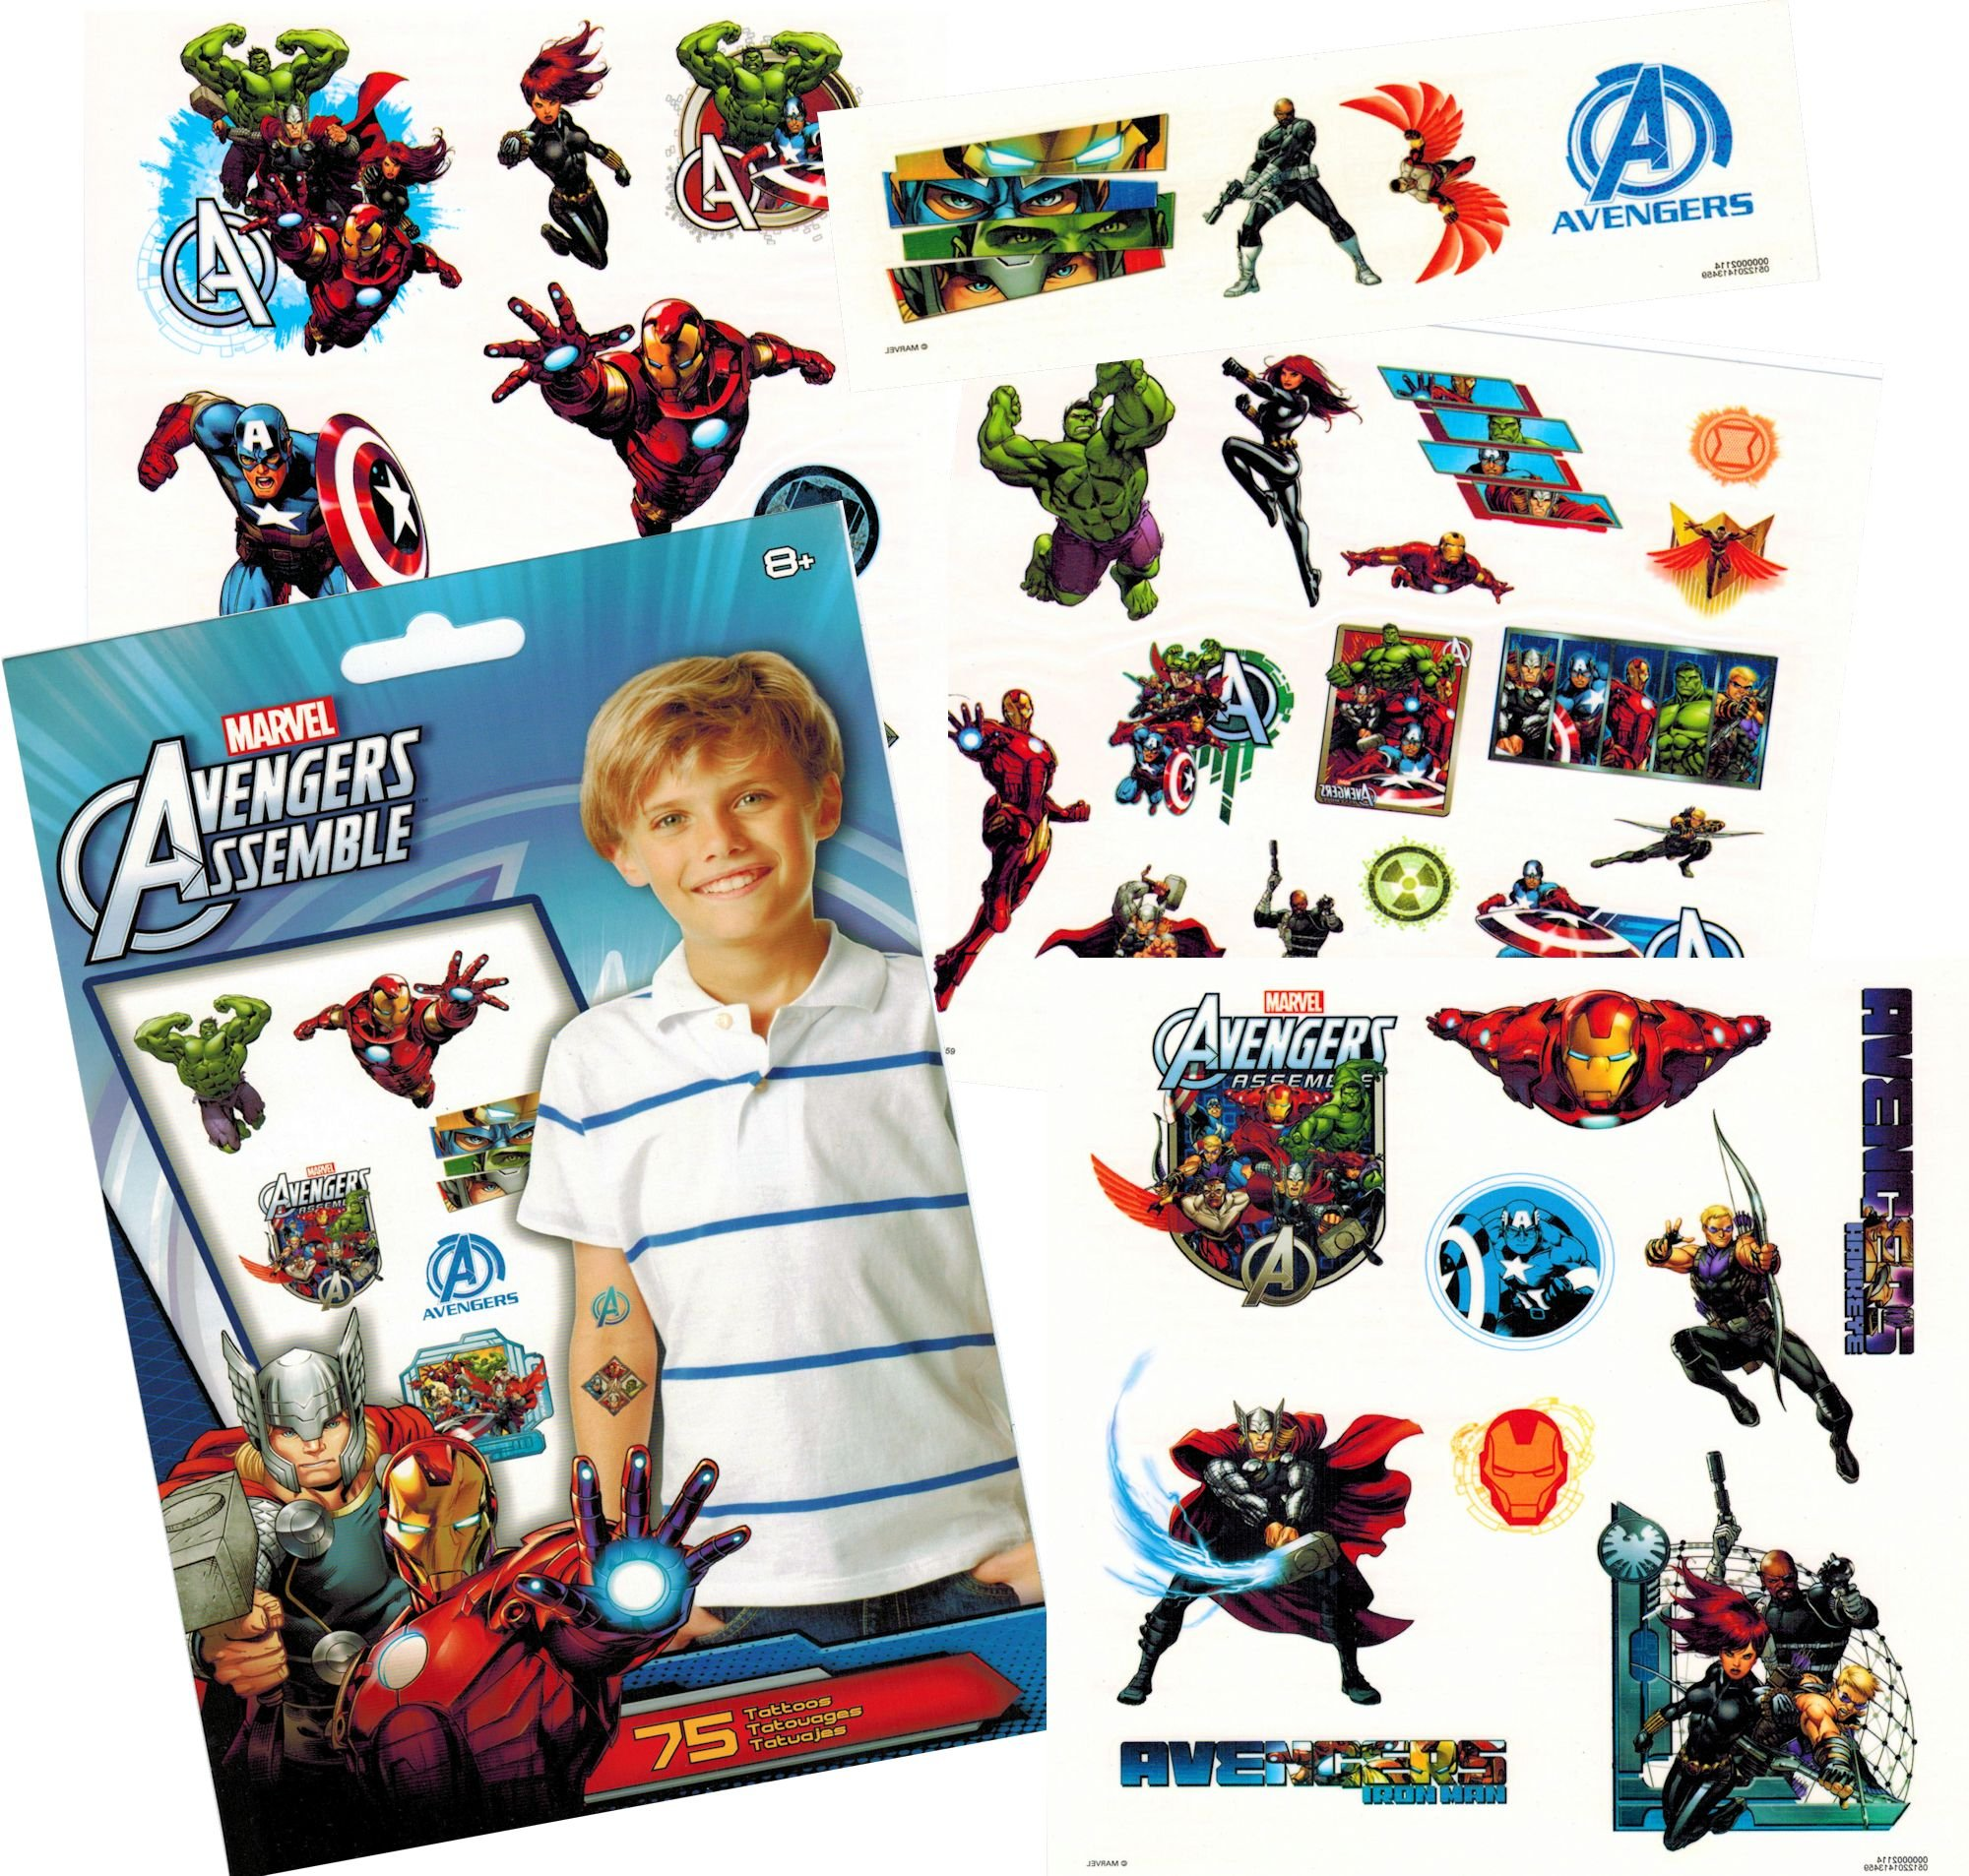 Marvel Avengers Temporary Tattoos (75) Iron Man, Thor, Hulk, Captain America and More!